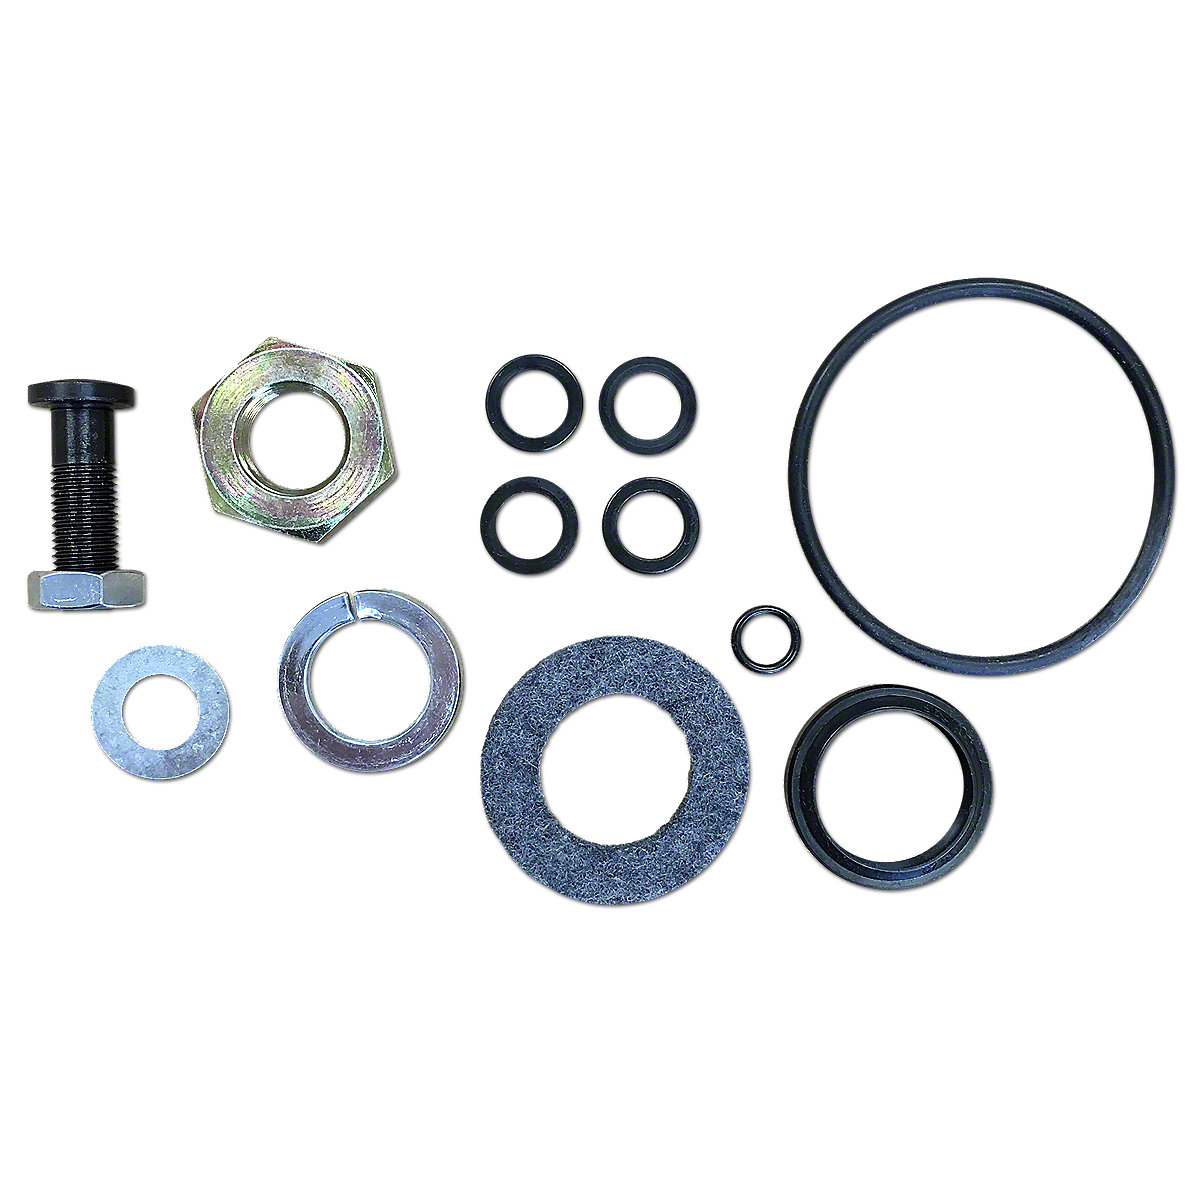 601 Ford Tractor Steering Sector : Abc steering sector hardware and s